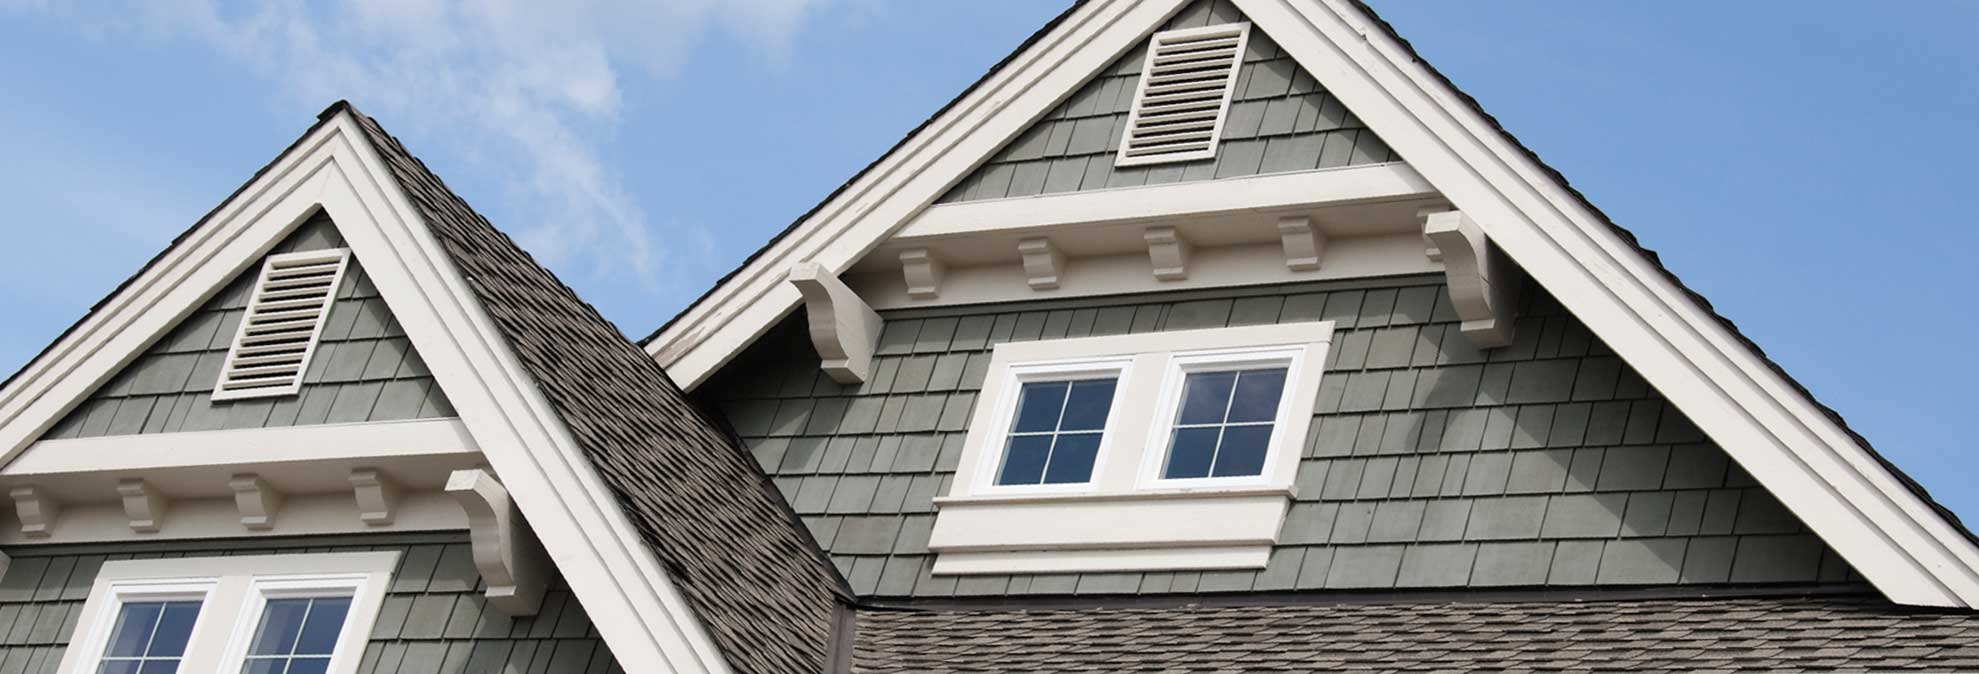 Best Roofing Buying Guide - Consumer Reports